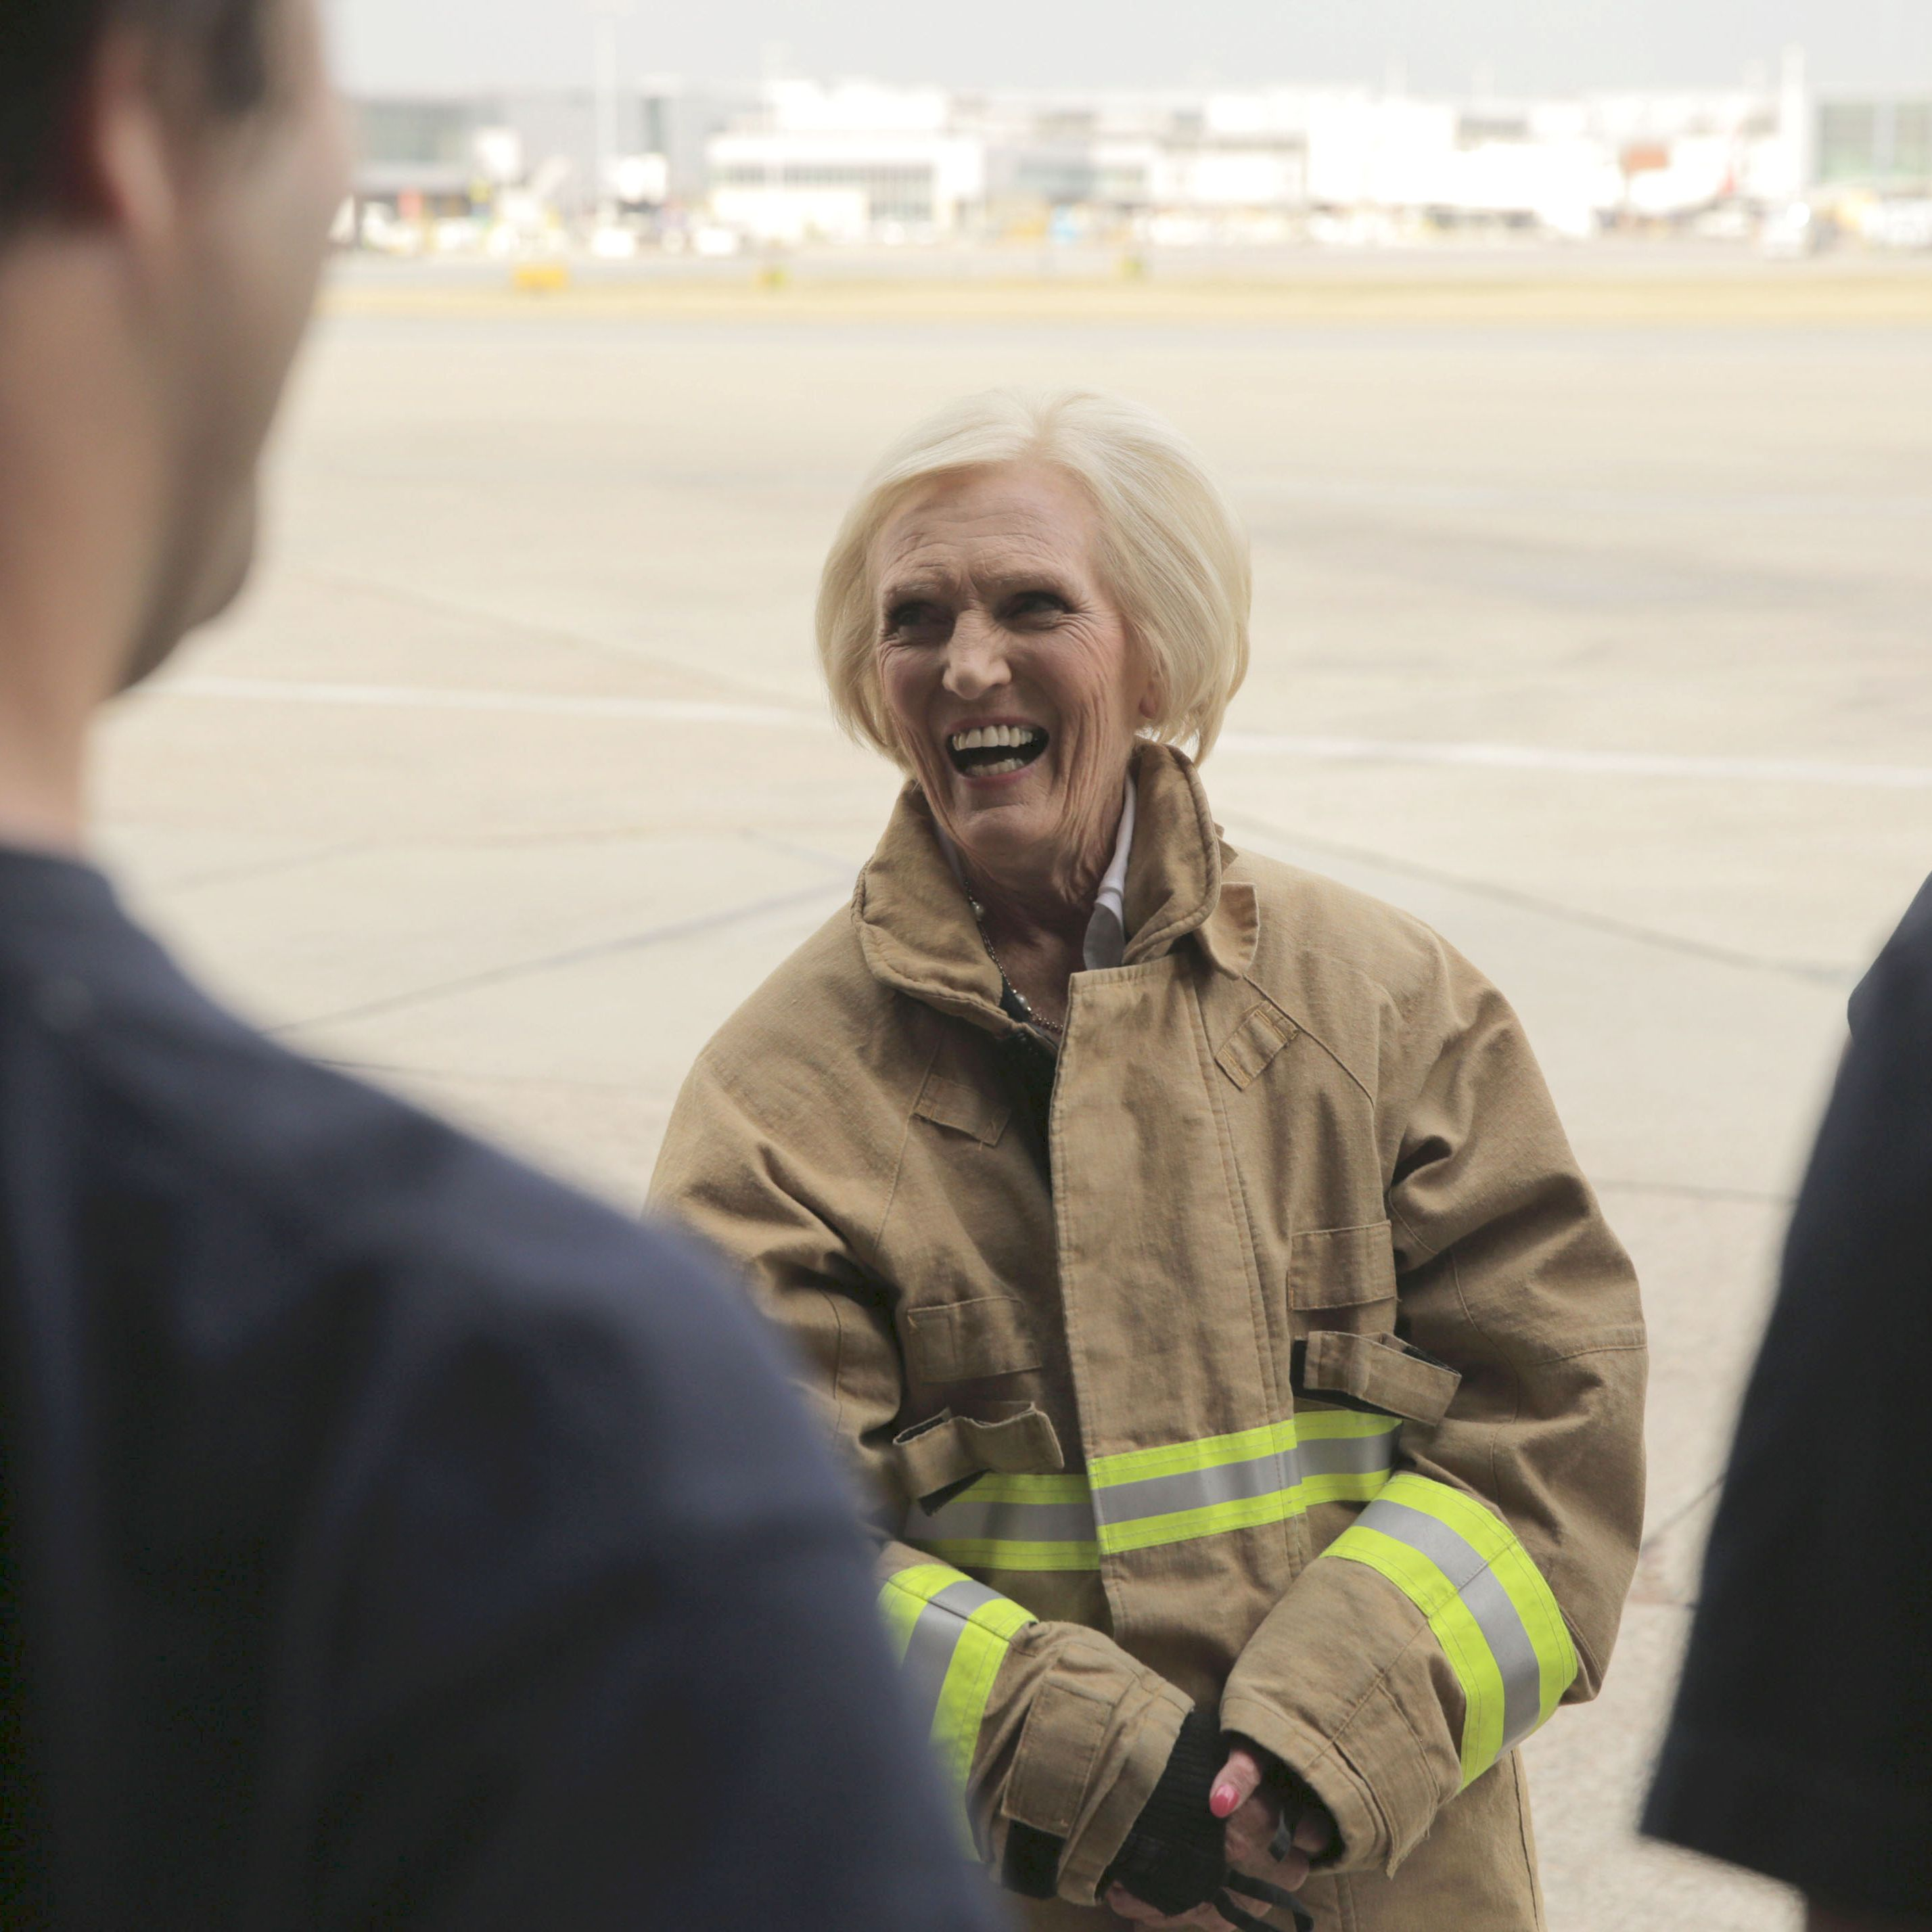 Mary Berry's BBC viewers spot awkward moment during her visit to Heathrow's £300,000 VIP lounges